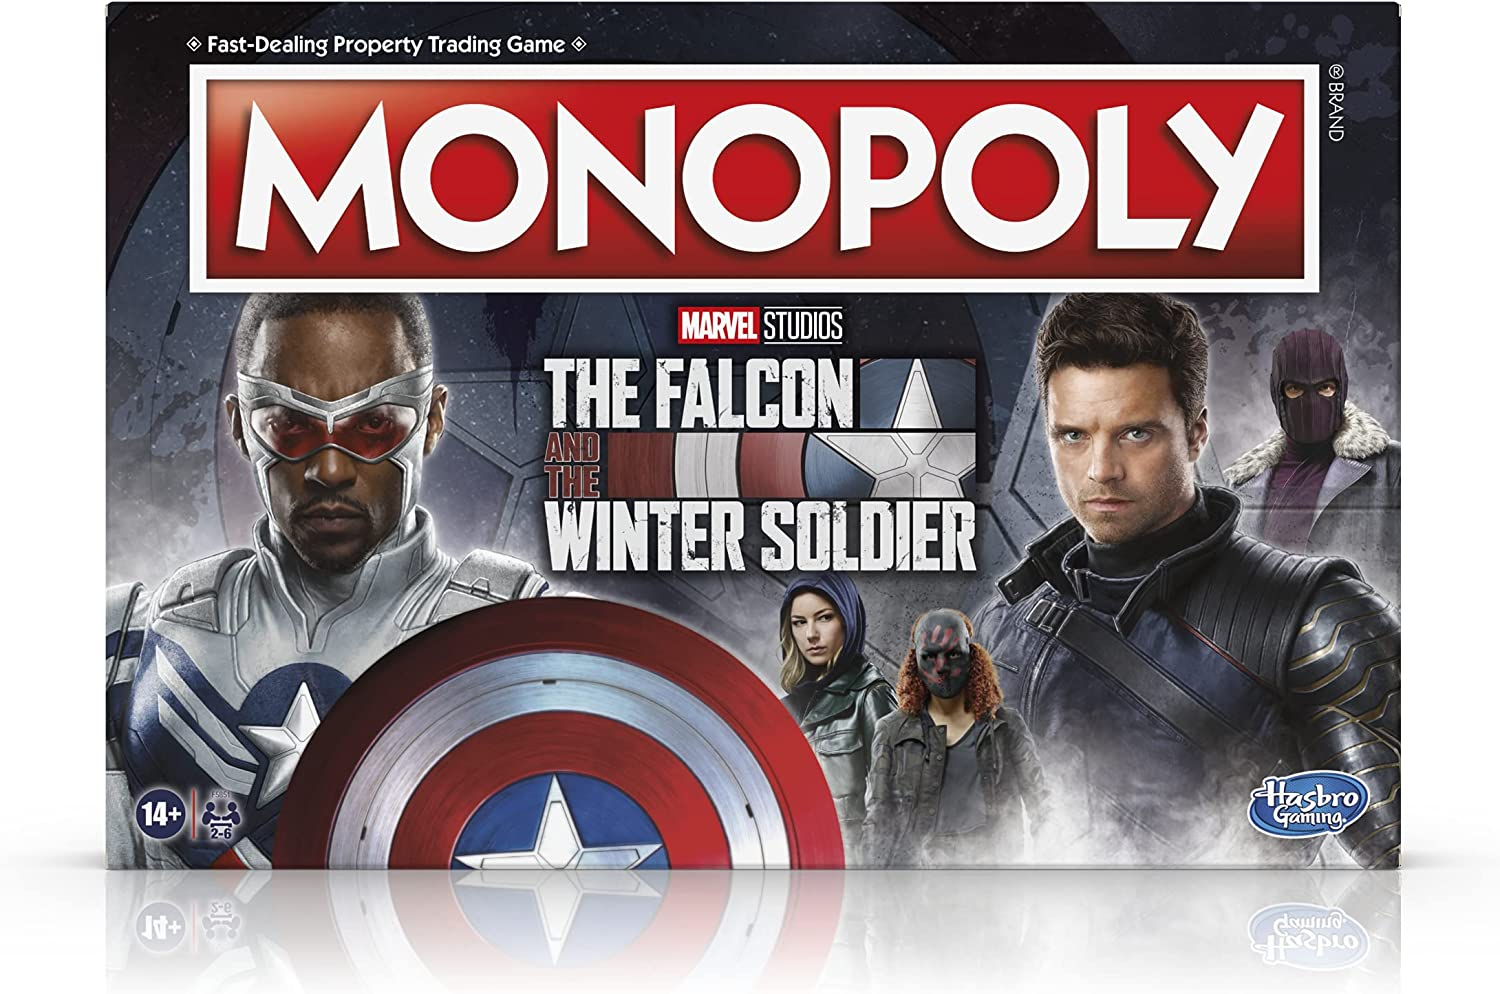 Monopoly: Marvel Studios The Falcon and The Winter Soldier Edition Board Game for Marvel Fans, Game for 2-6 Players for Ages 14 and Up